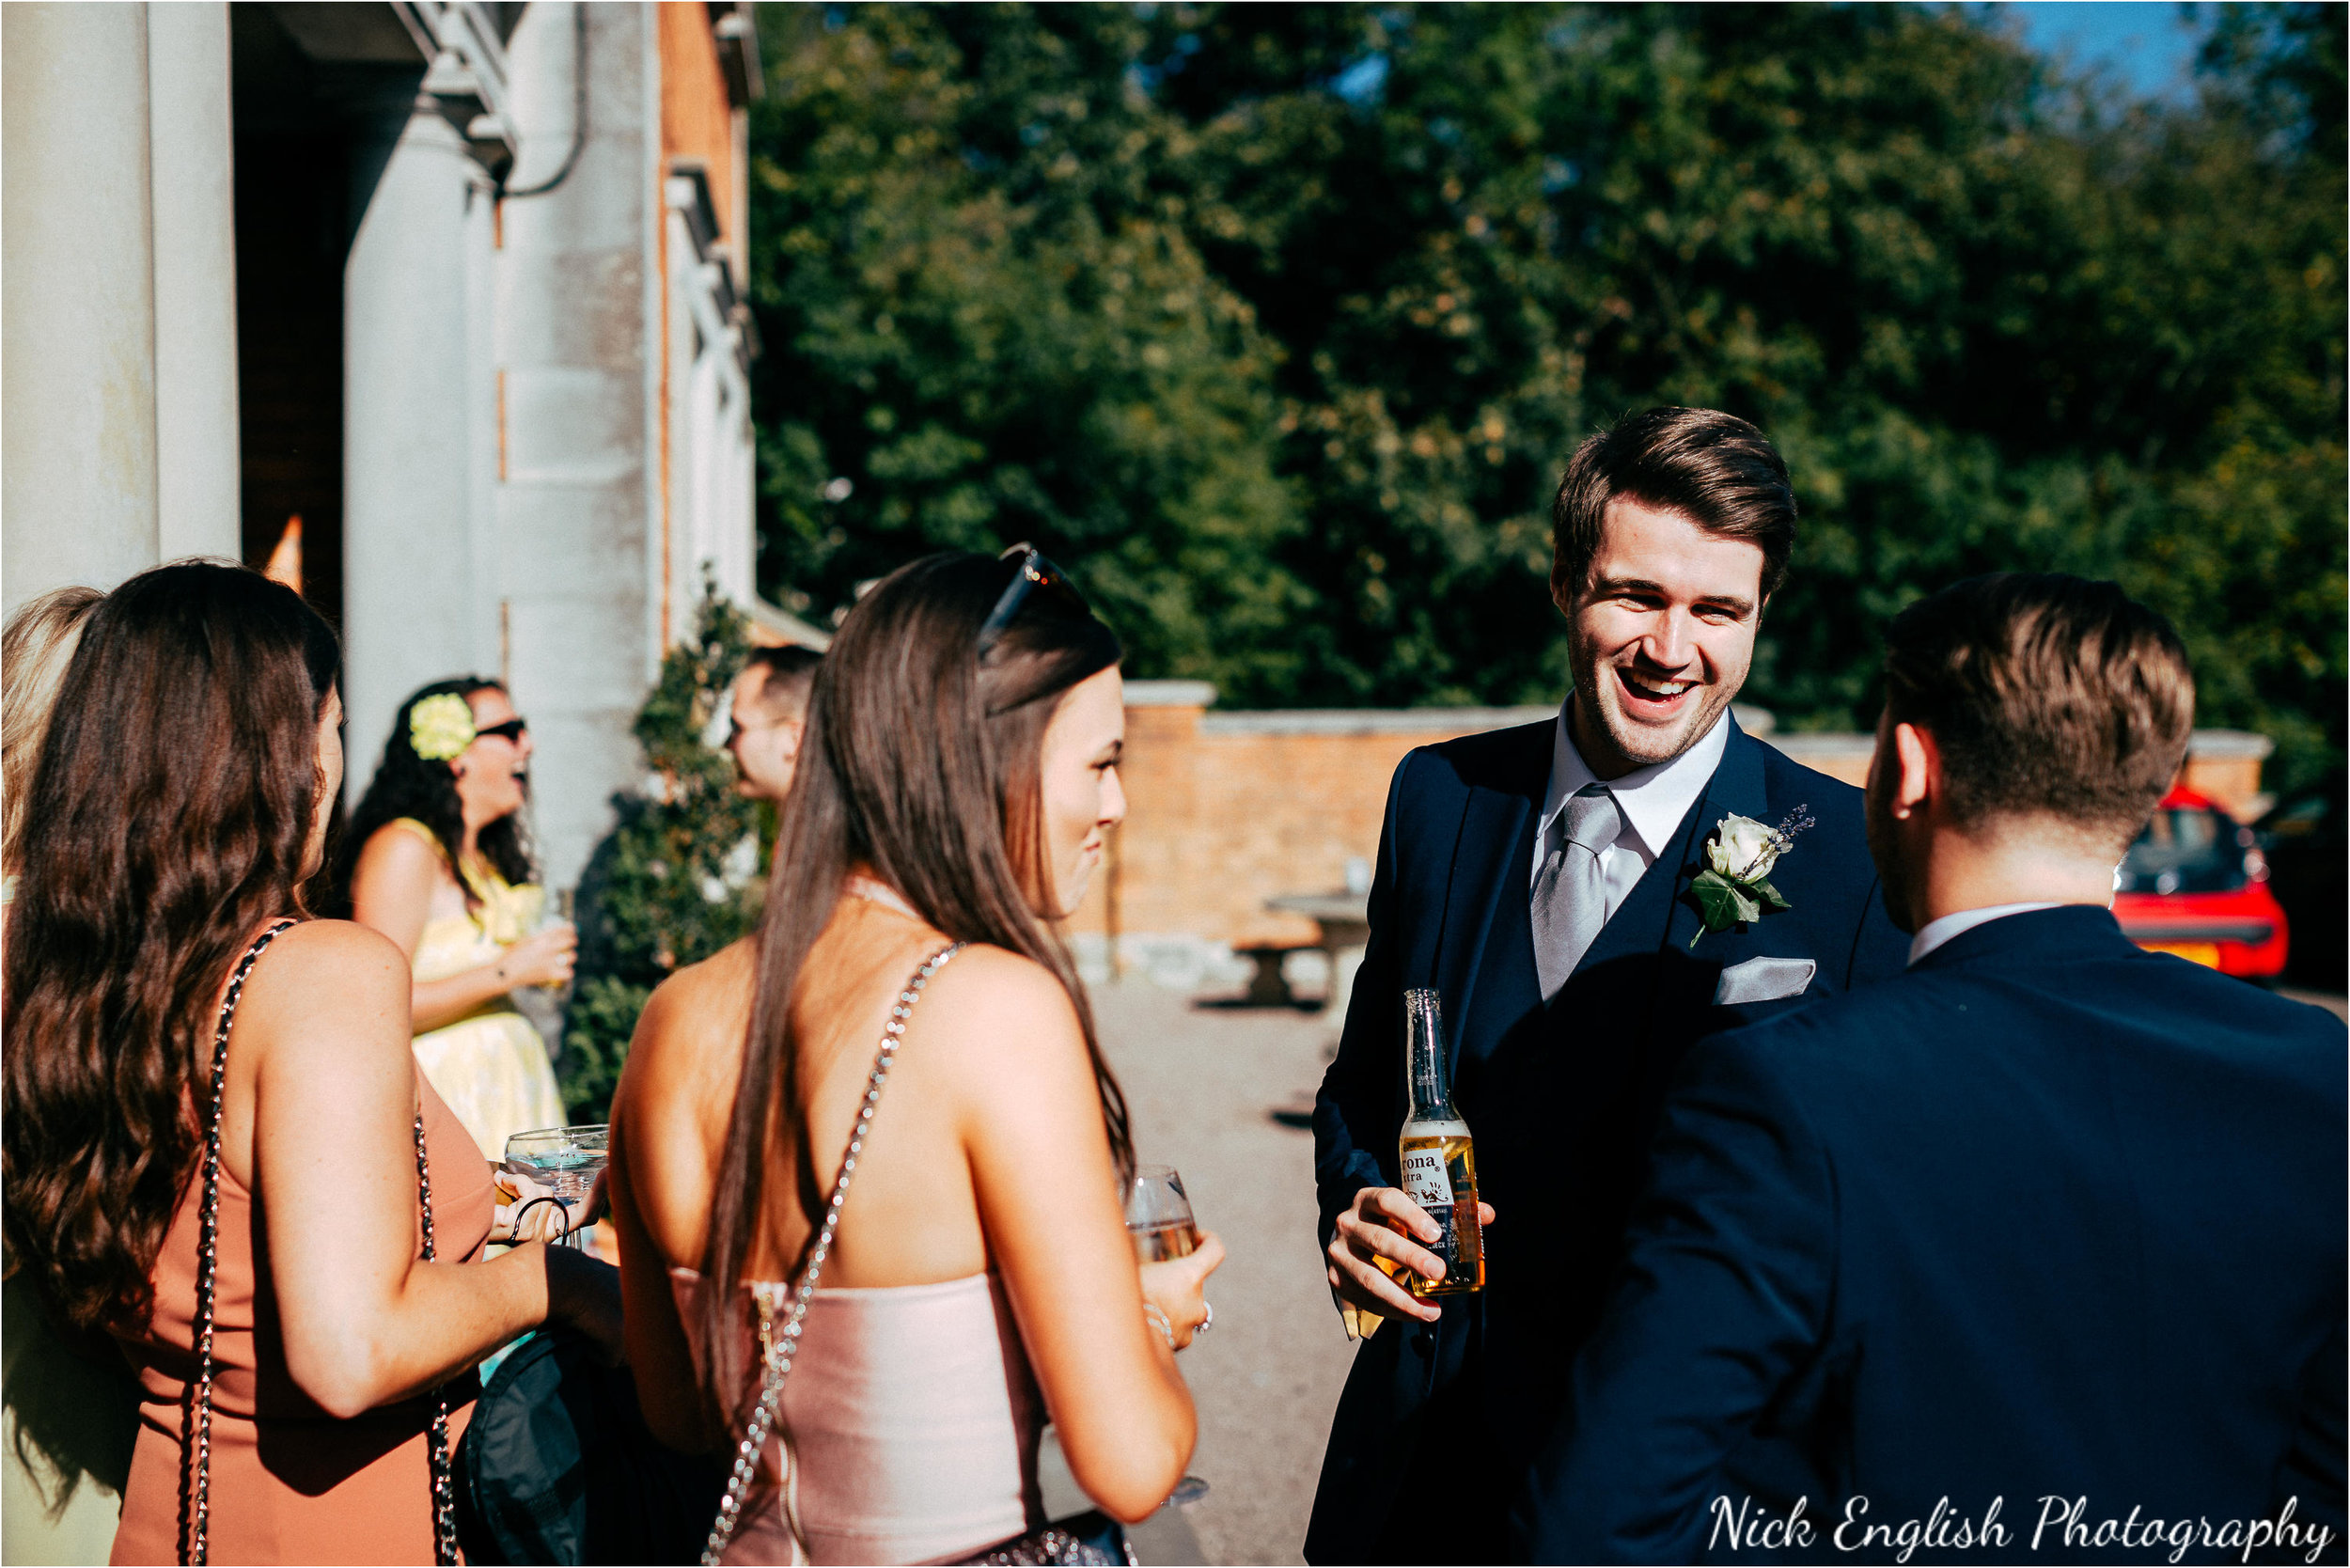 Eaves_Hall_Wedding_Photographs_Nick_English_Photography-149.jpg